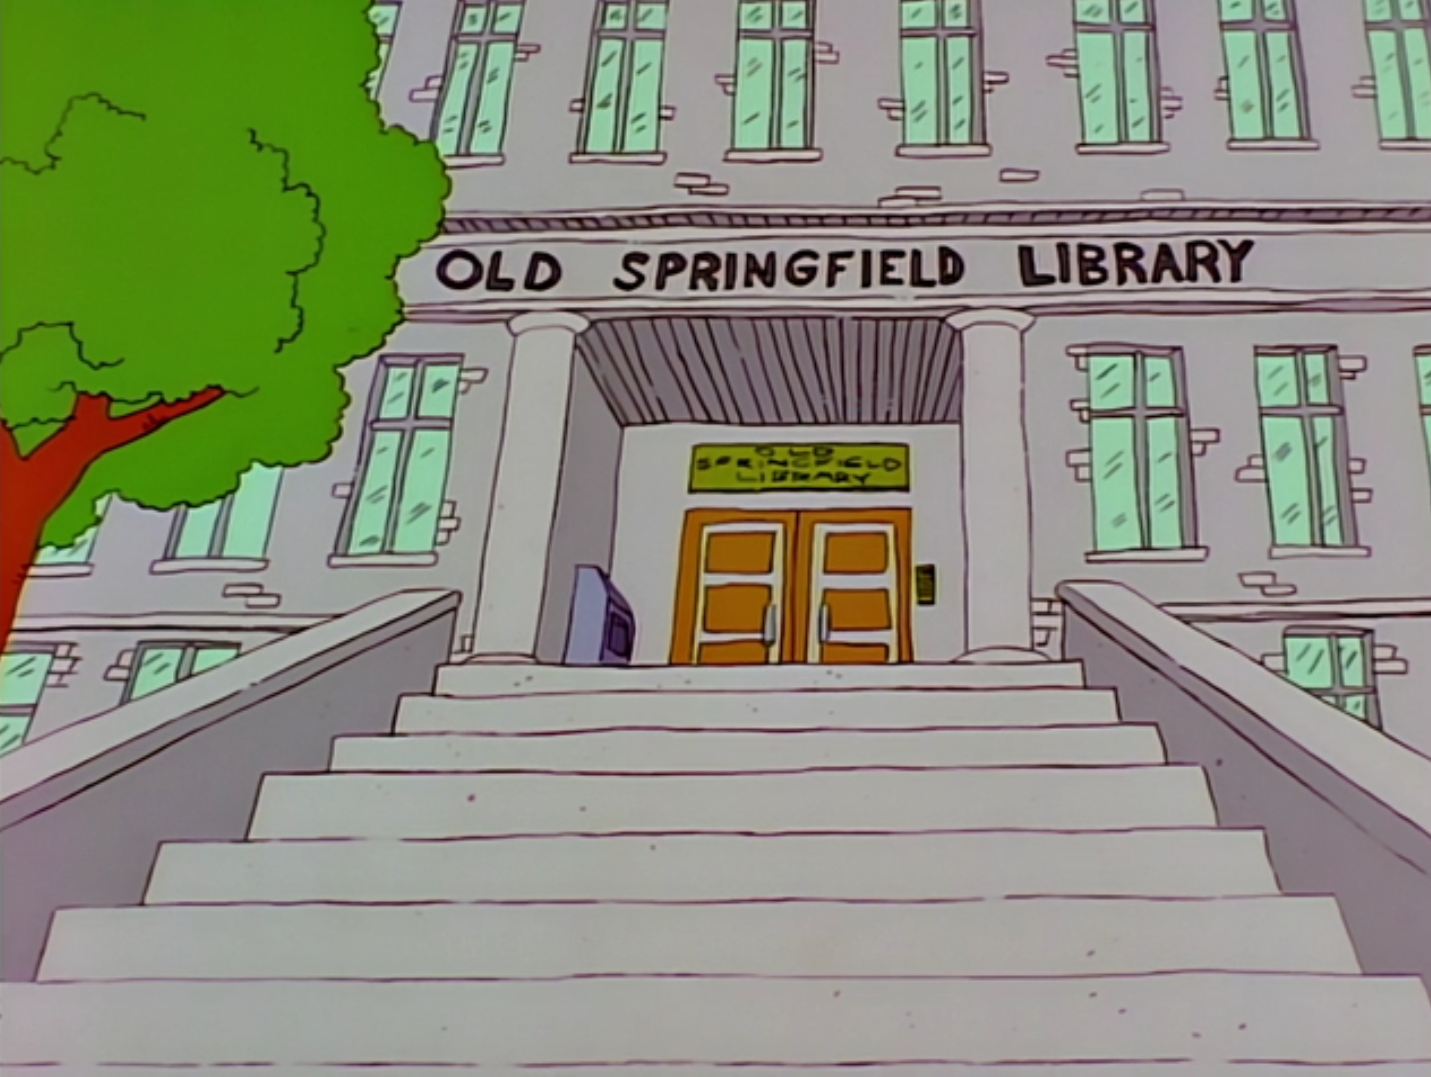 Old springfield library.png